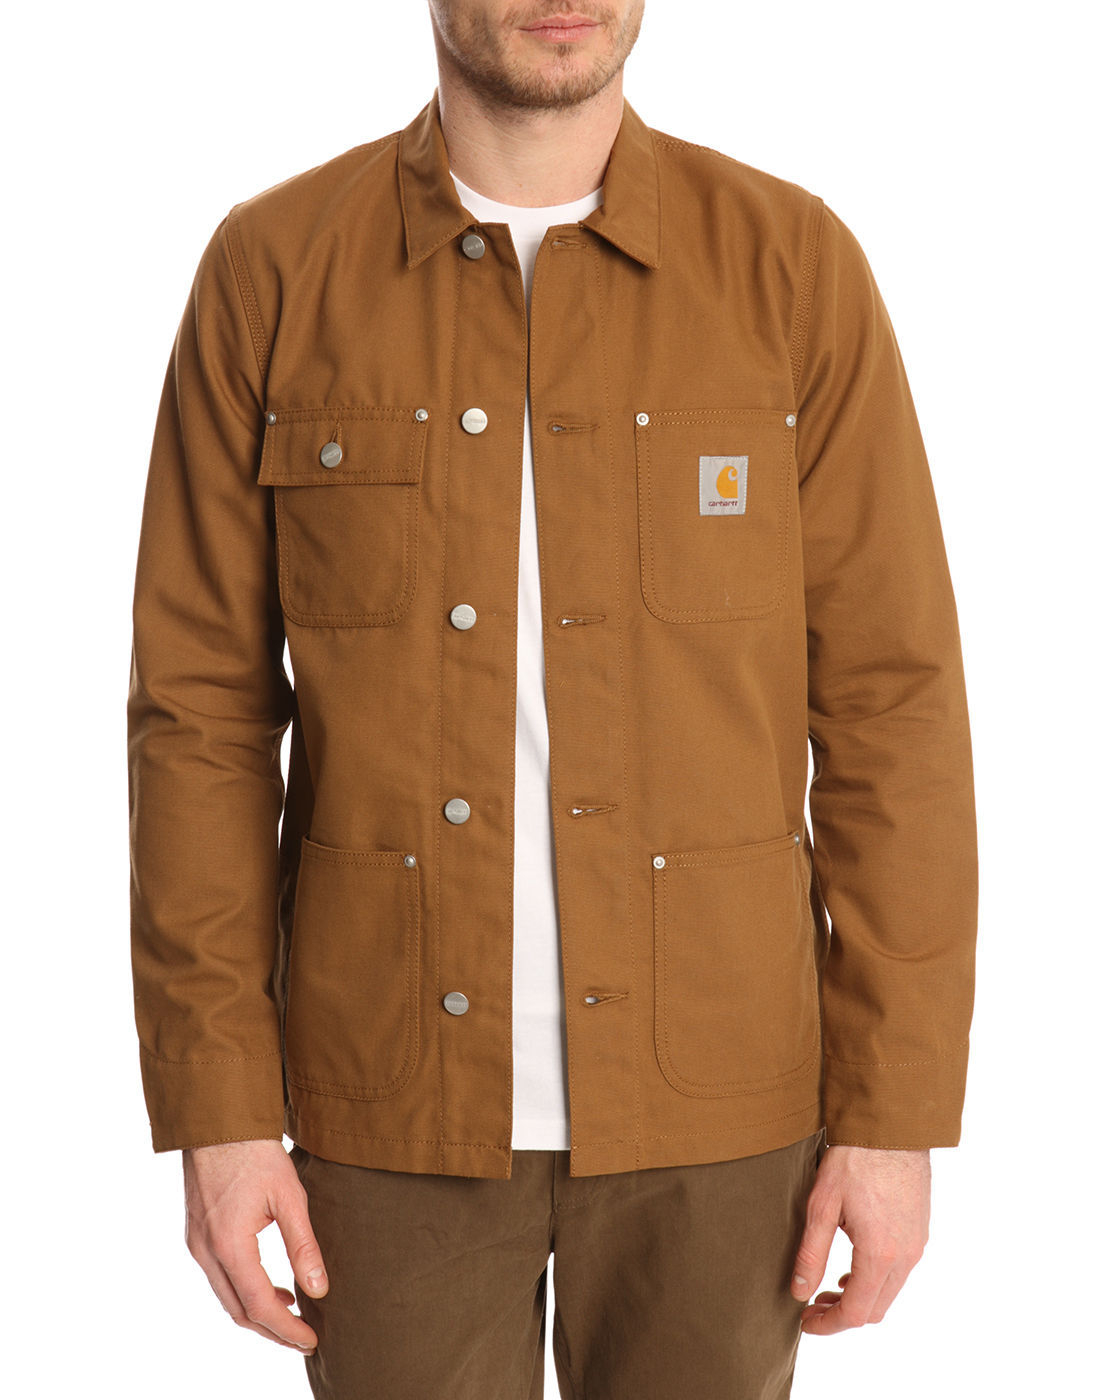 Brown Work Jacket | Outdoor Jacket